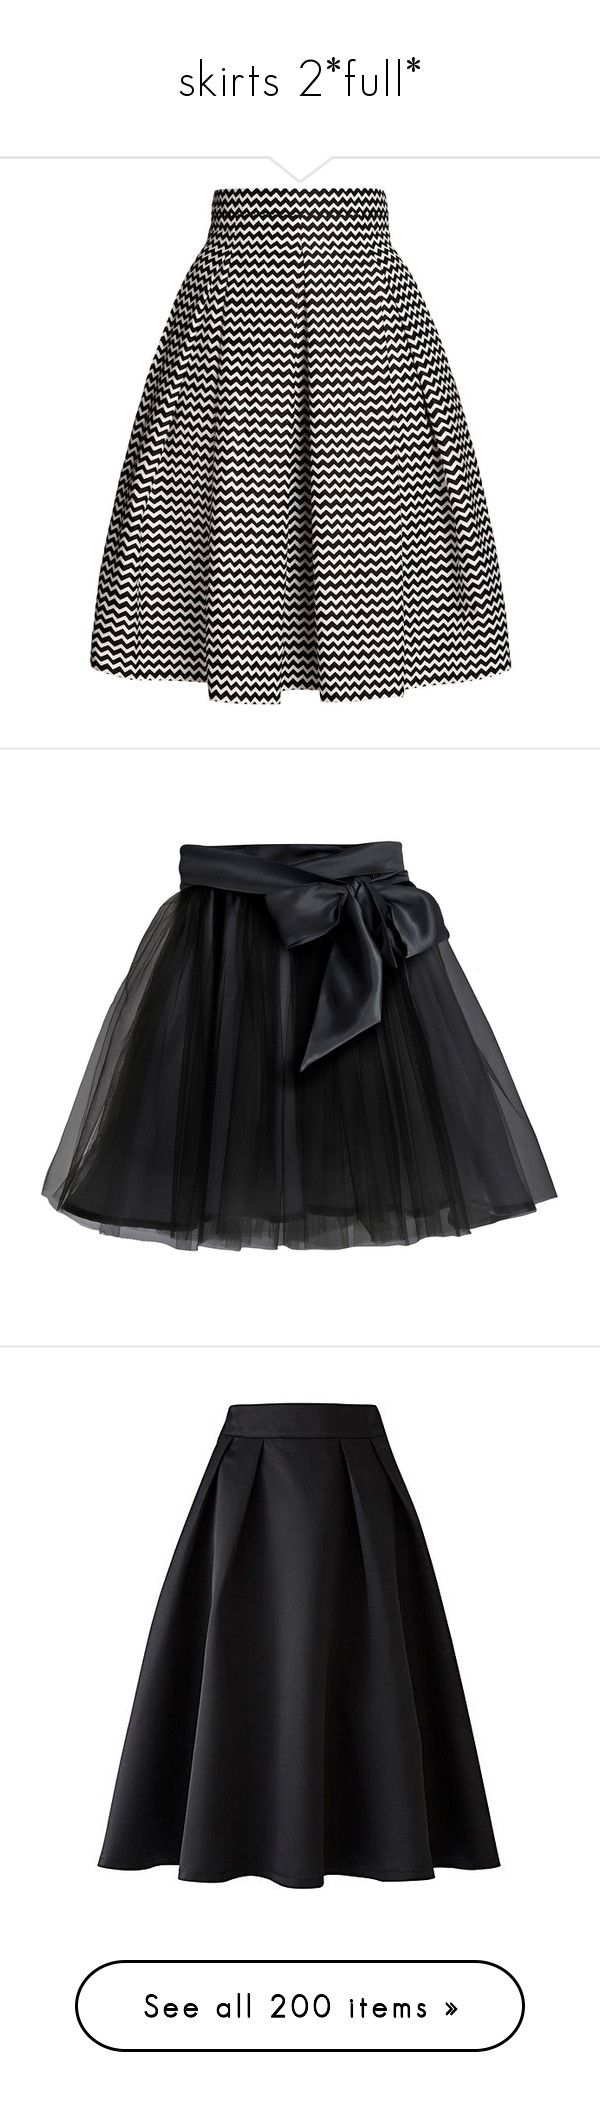 """""""skirts 2*full*"""" by crossjaden on Polyvore featuring skirts, bottoms, saias, jupes, fitted midi skirt, cotton pleated skirt, midi skirt, calf length skirts, fitted skirts and black"""